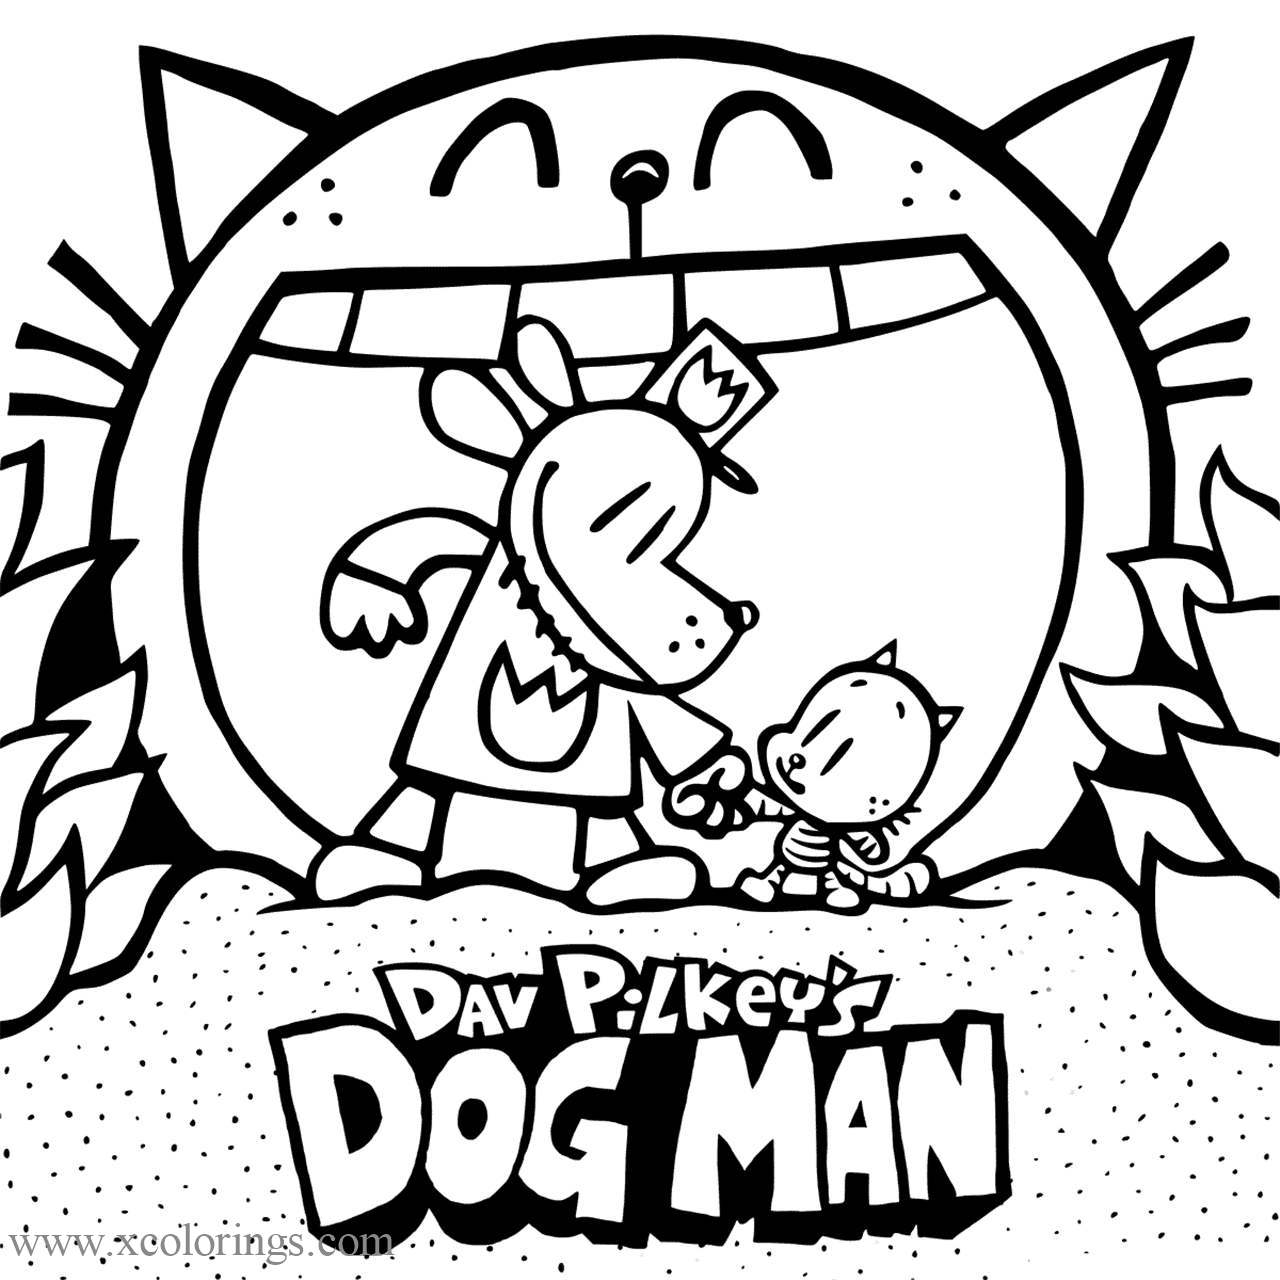 dog man coloring pages dog man coloring pages archives xcolorings pages dog coloring man